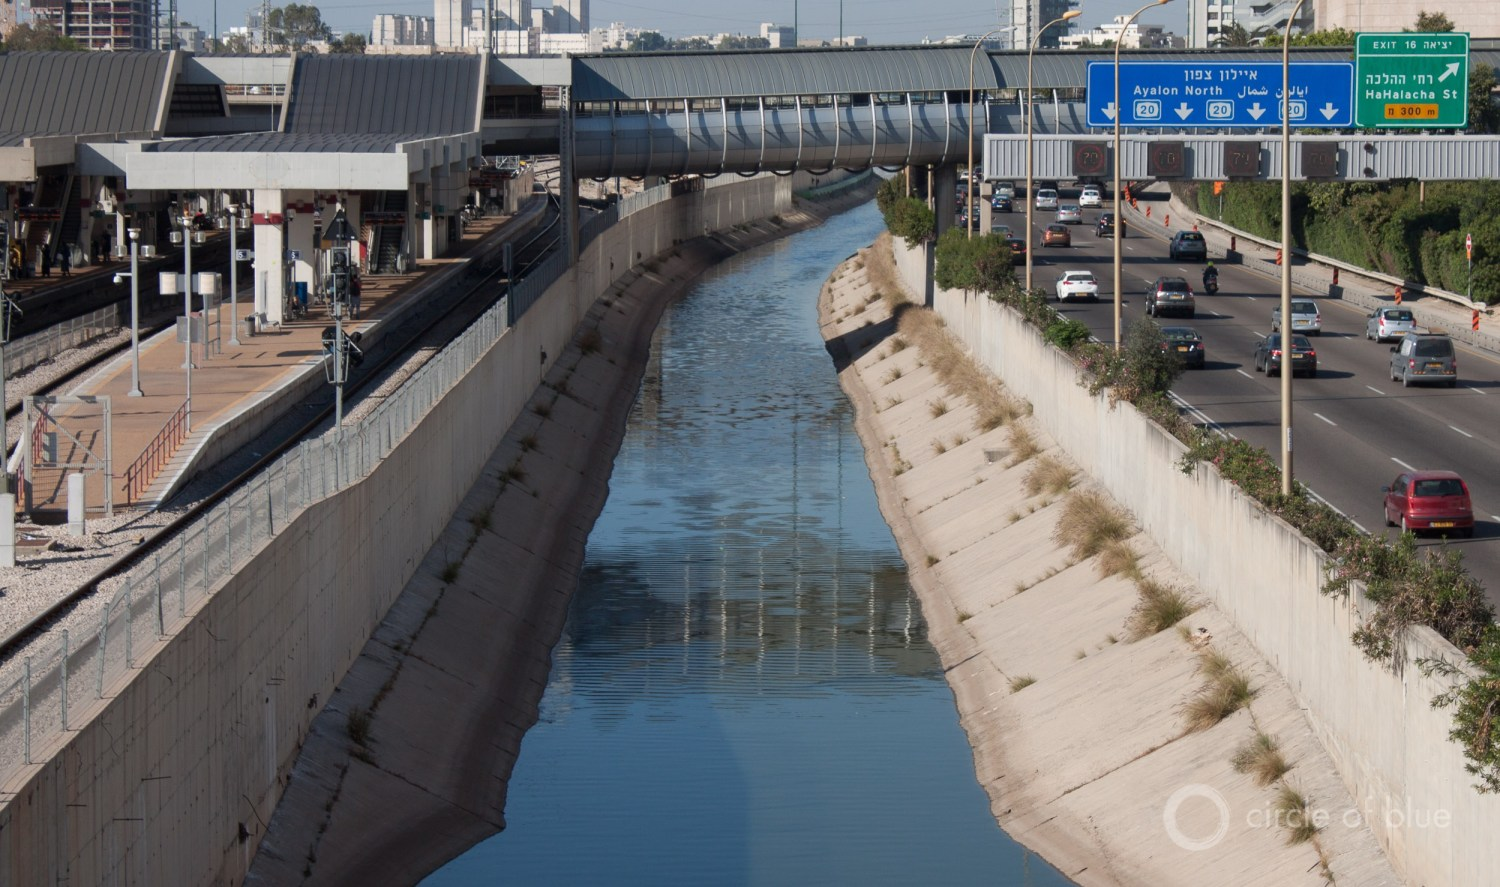 A half century ago, Israel built canals to move water from the Jordan River to the coasts. Today, desalination plants send freshwater inland. Photo © Brett Walton / Circle of Blue